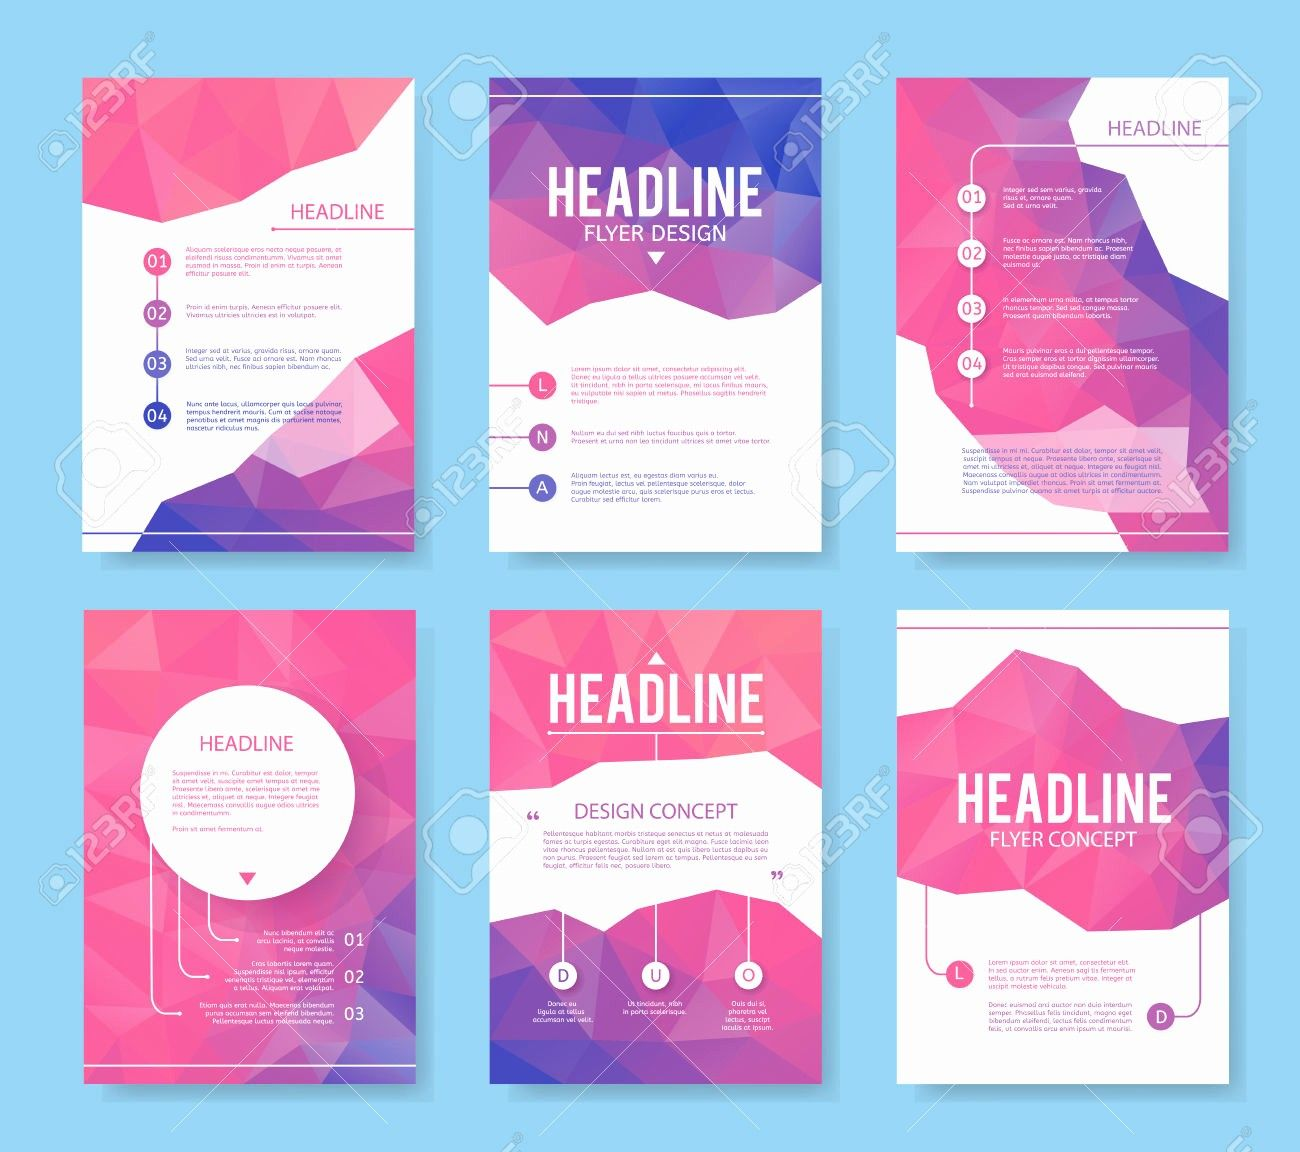 Inspirational Free Blank Flyer Templates Yourweek Edb9b9eca25e Free Brochure Template Templates Printable Free Flyer Template